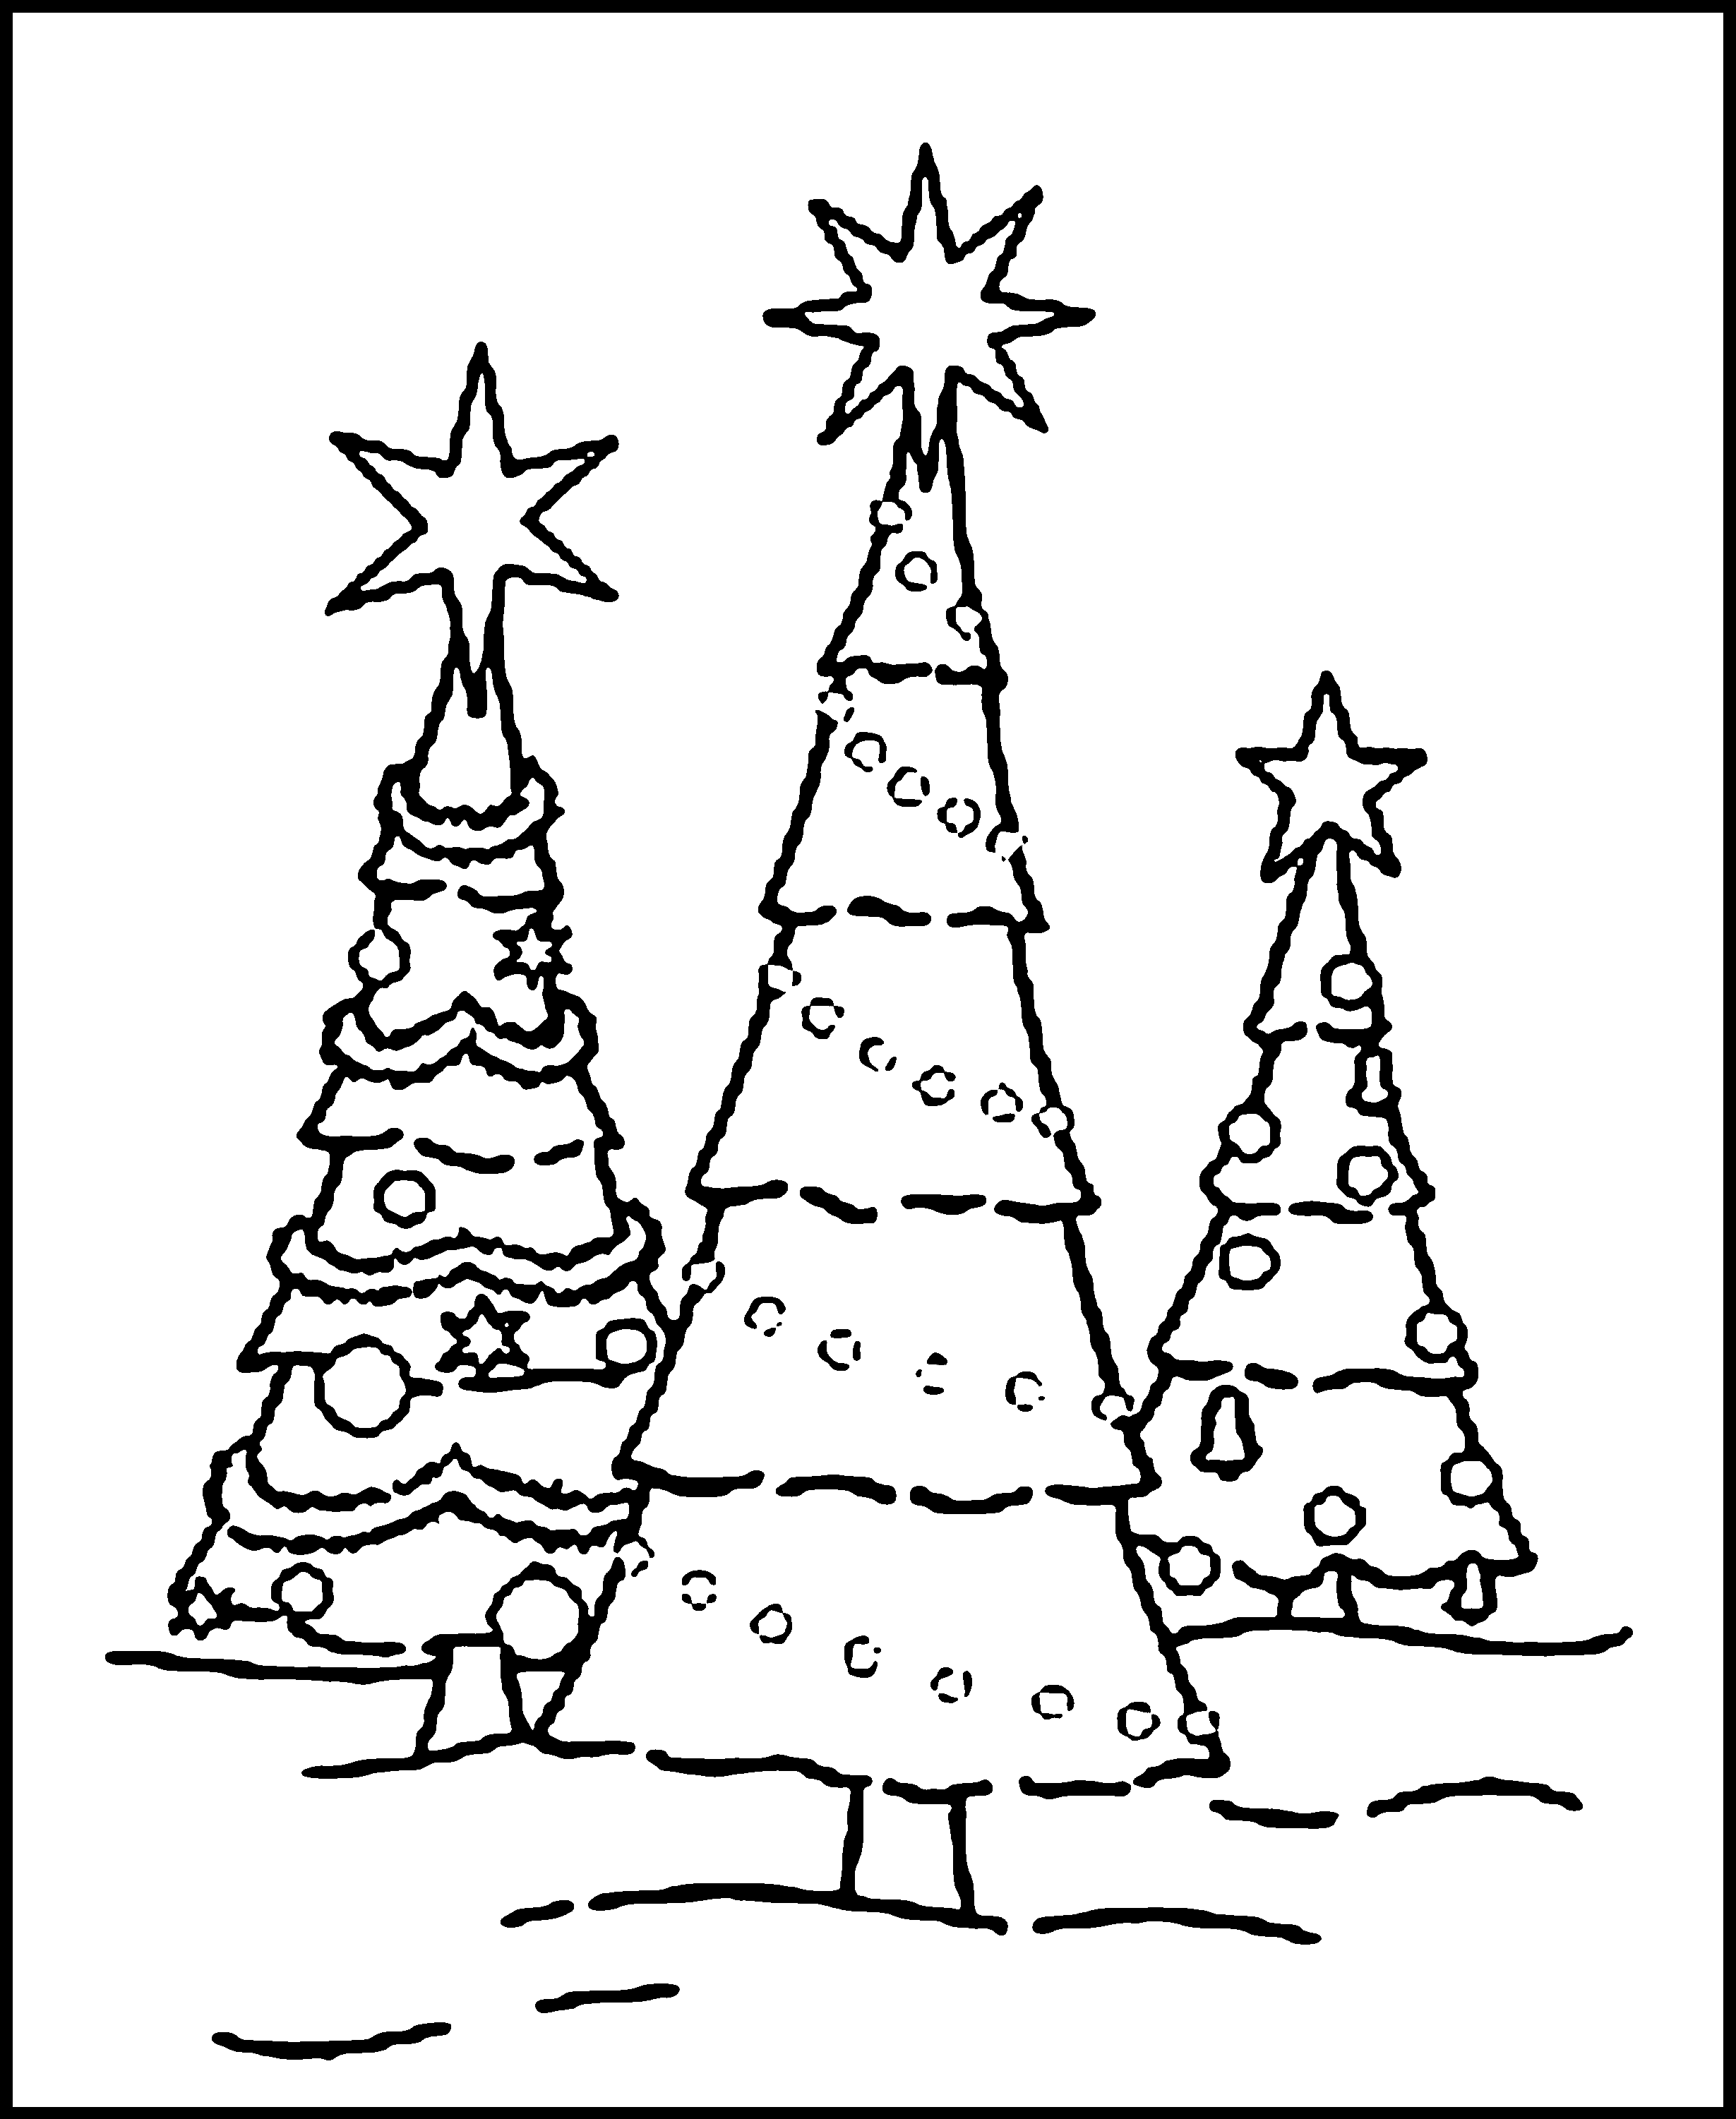 xmas tree coloring pages christmas tree coloring pages for childrens printable for free coloring tree pages xmas